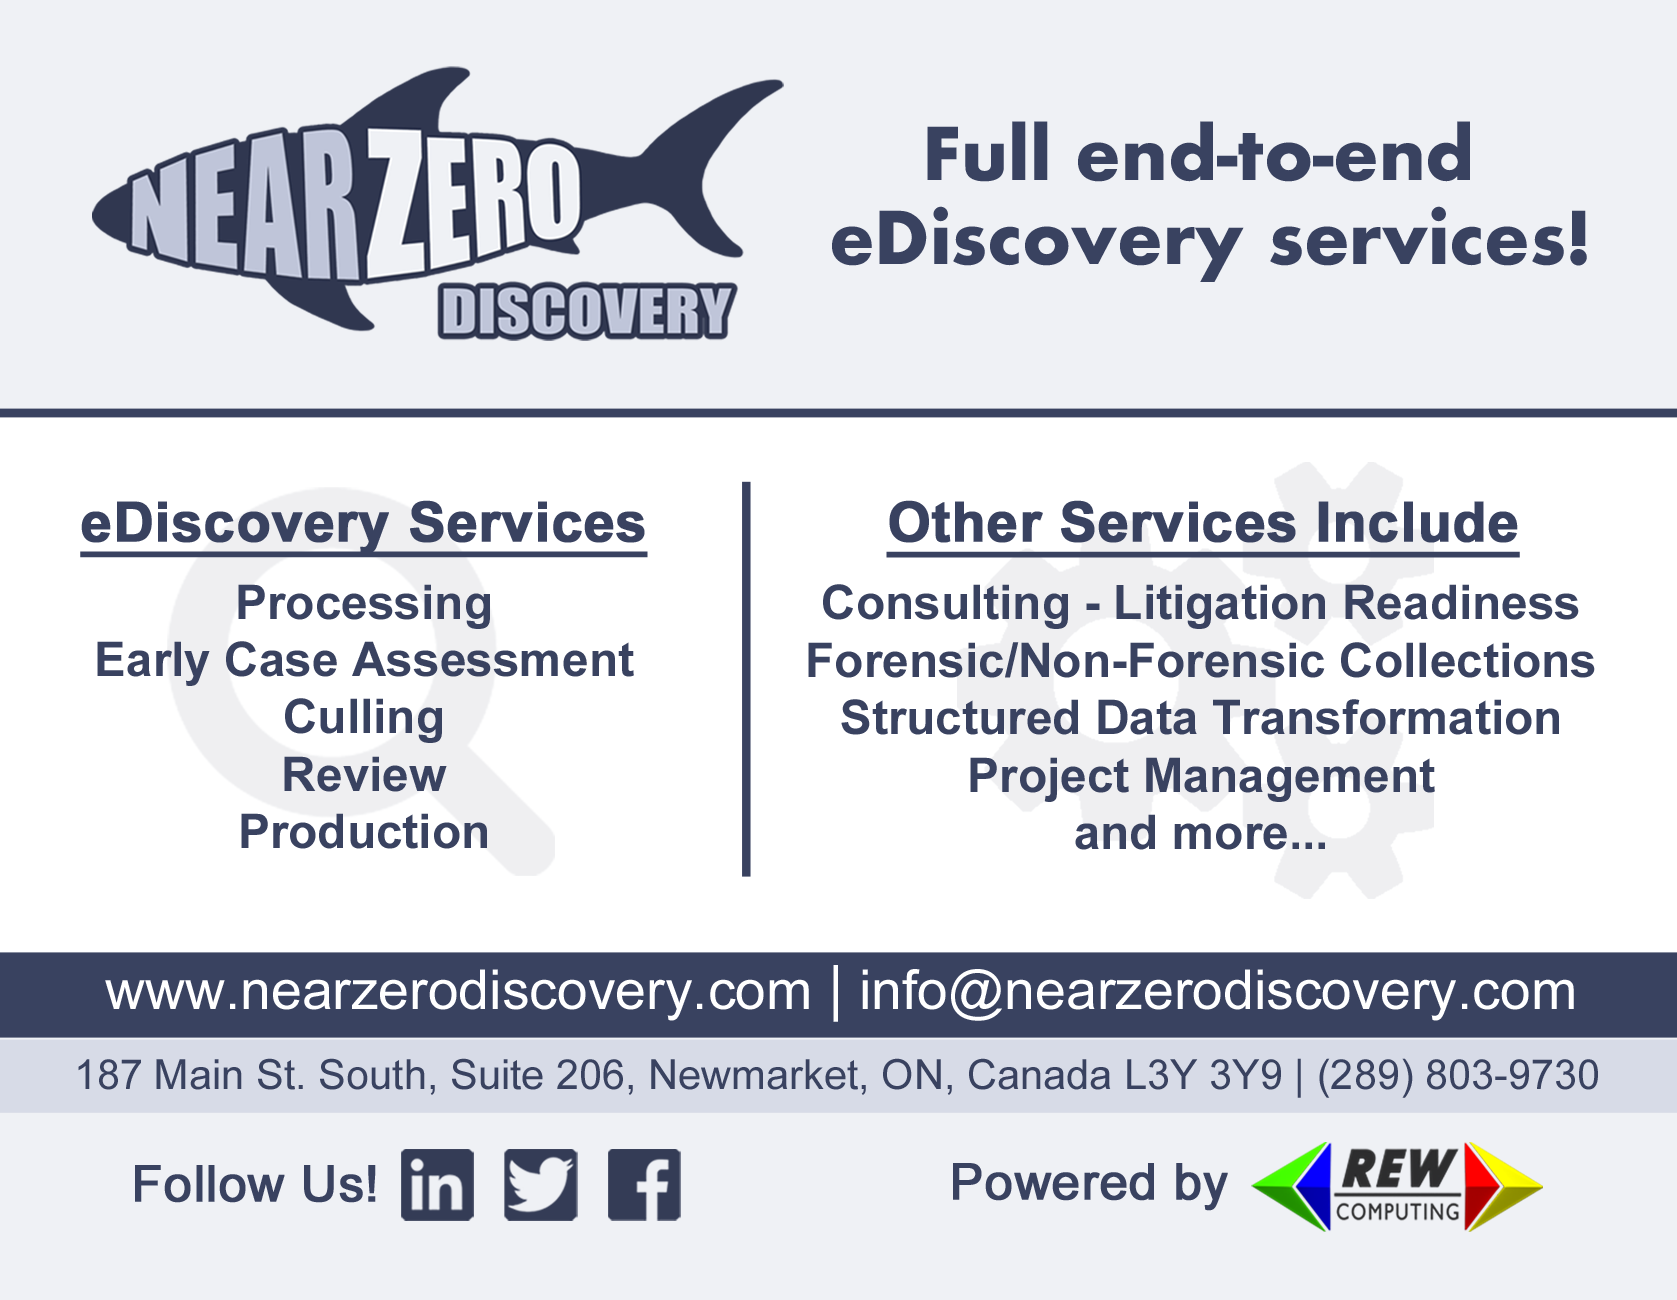 NearZero Discovery offering full end-to-end eDiscovery services covering all phases of discovery: processing, early case assessment, culling, review and production.